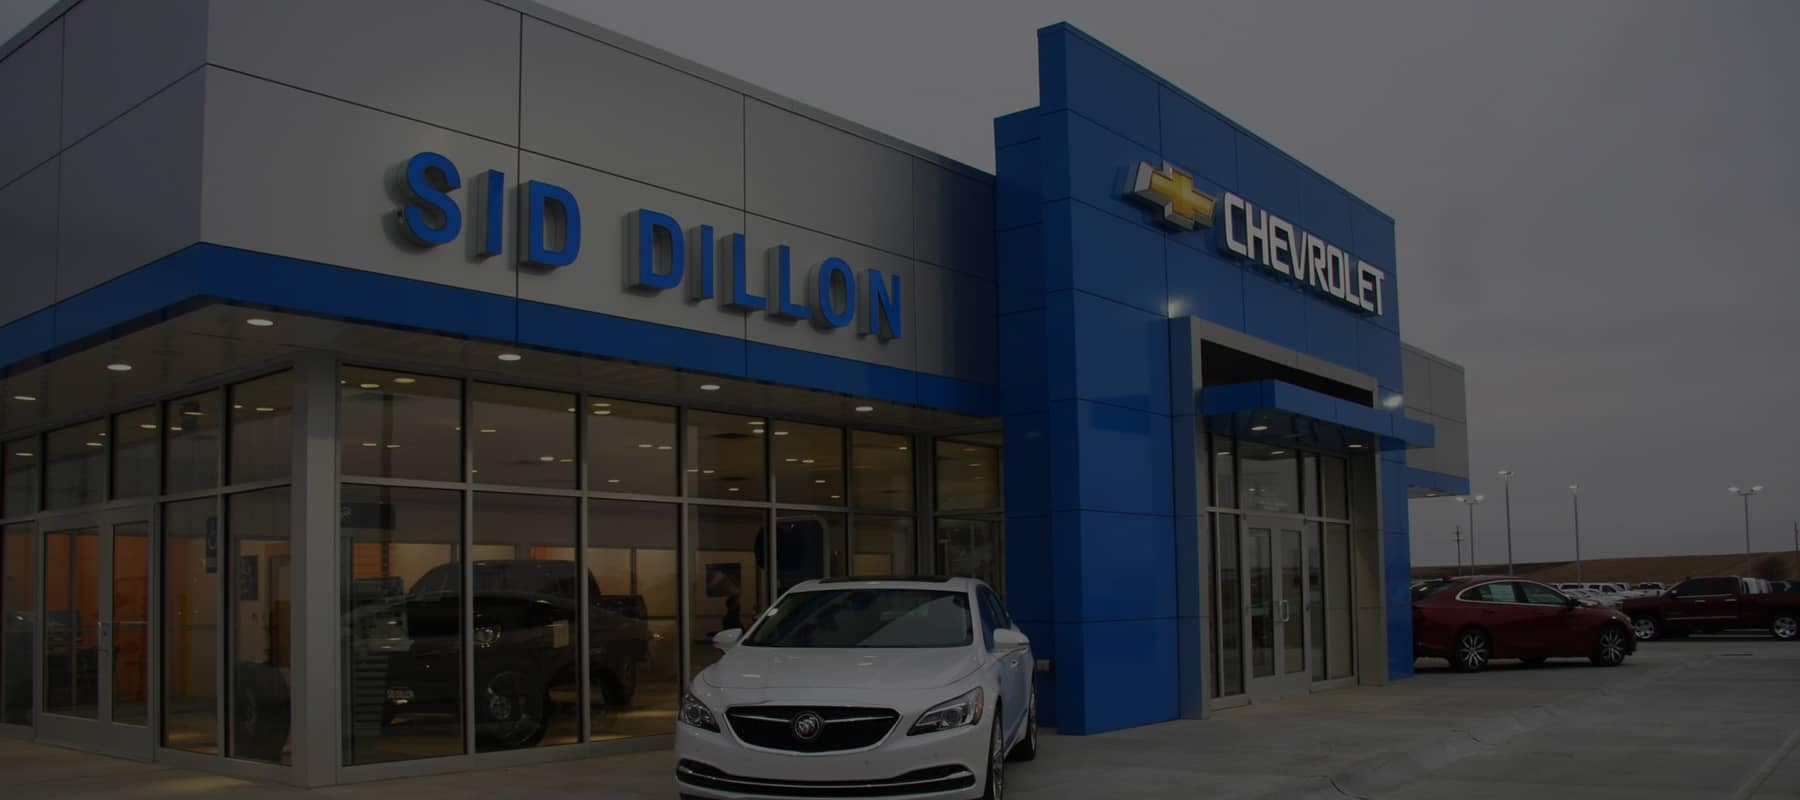 An exterior shot of the dealership building.